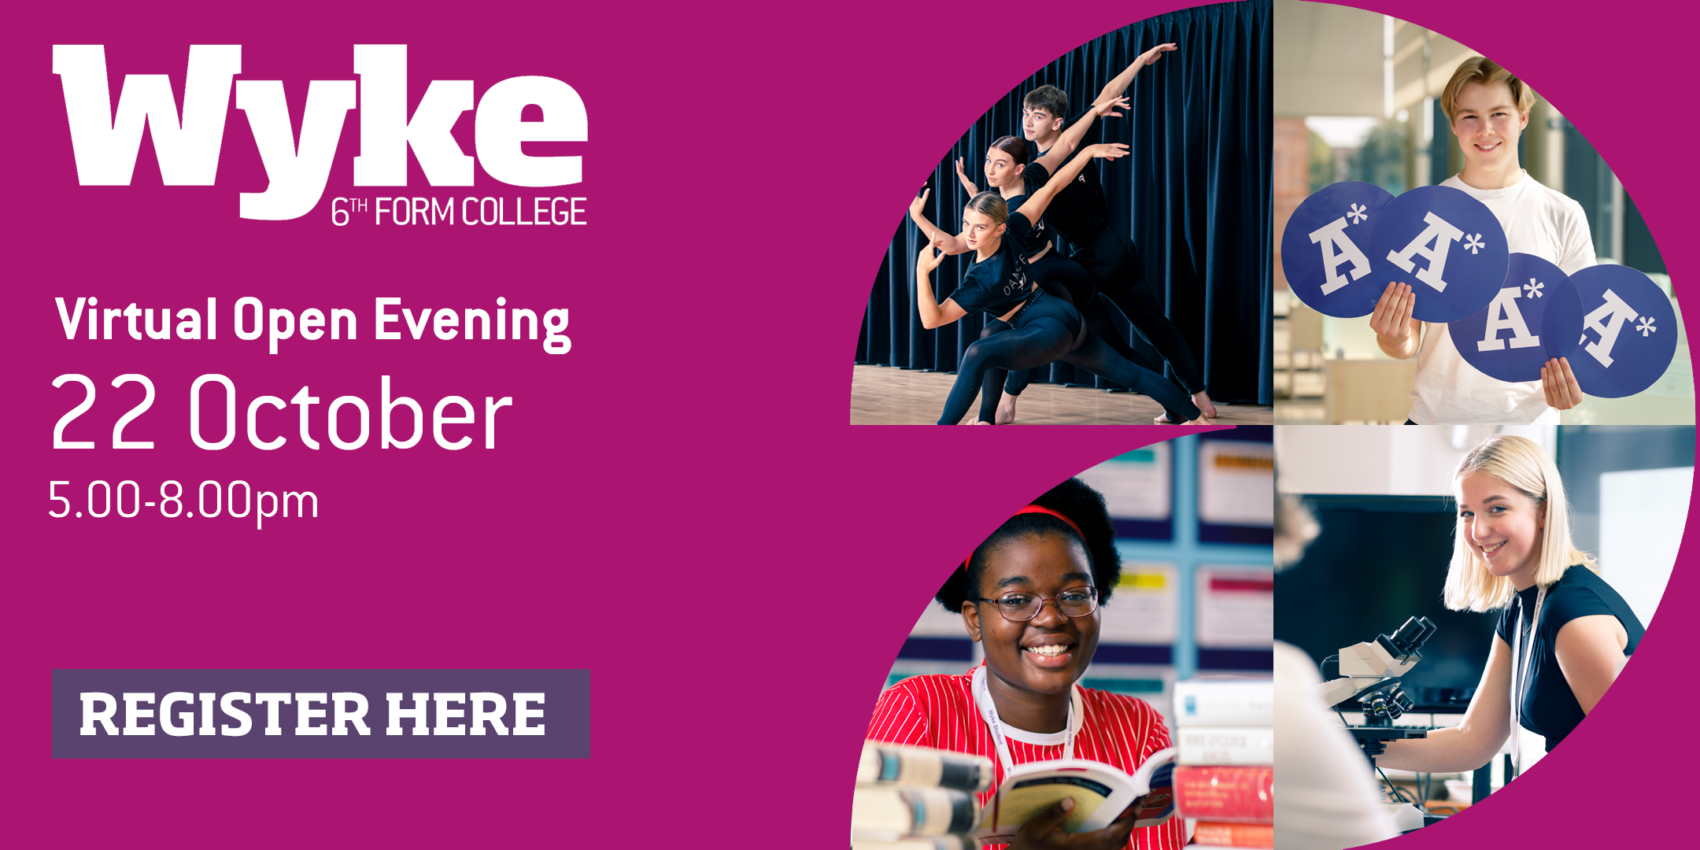 Virtual Open Evening Register Here